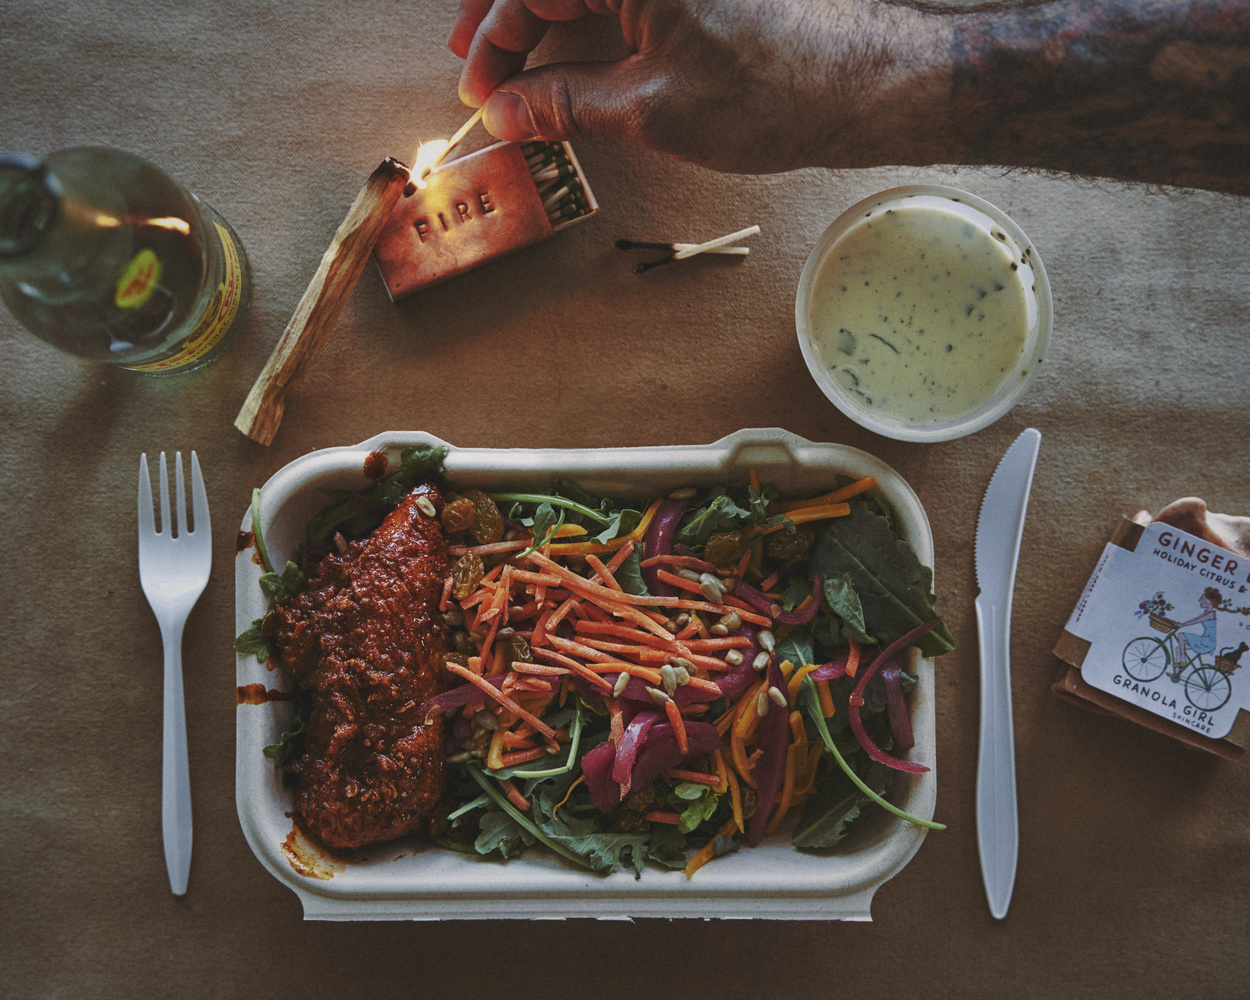 Curb to Table | Royal's Hot Chicken by Gary Barragan